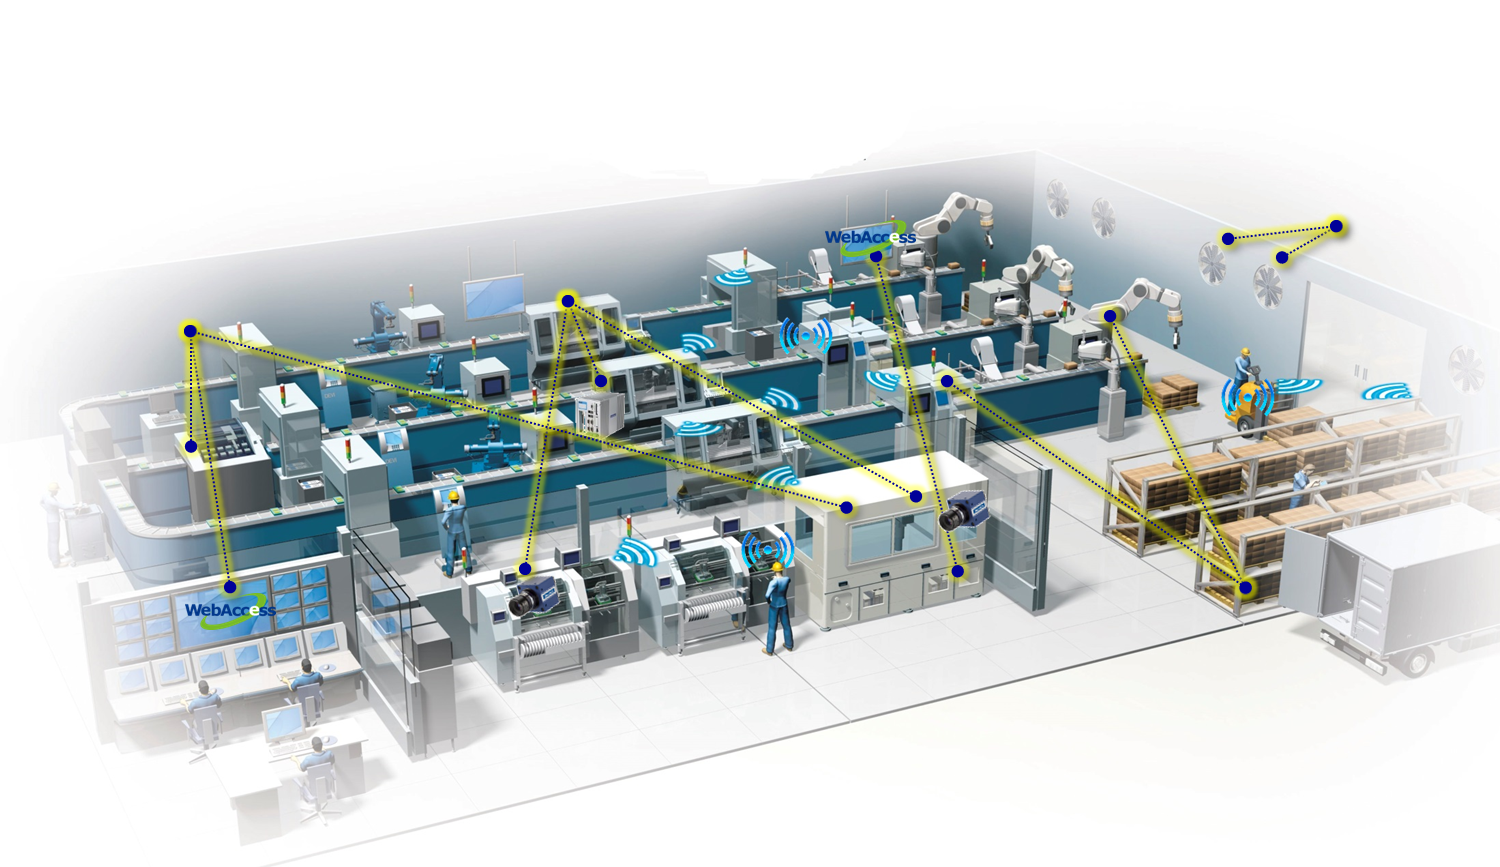 Lean manufacturing through Electronics and IoT